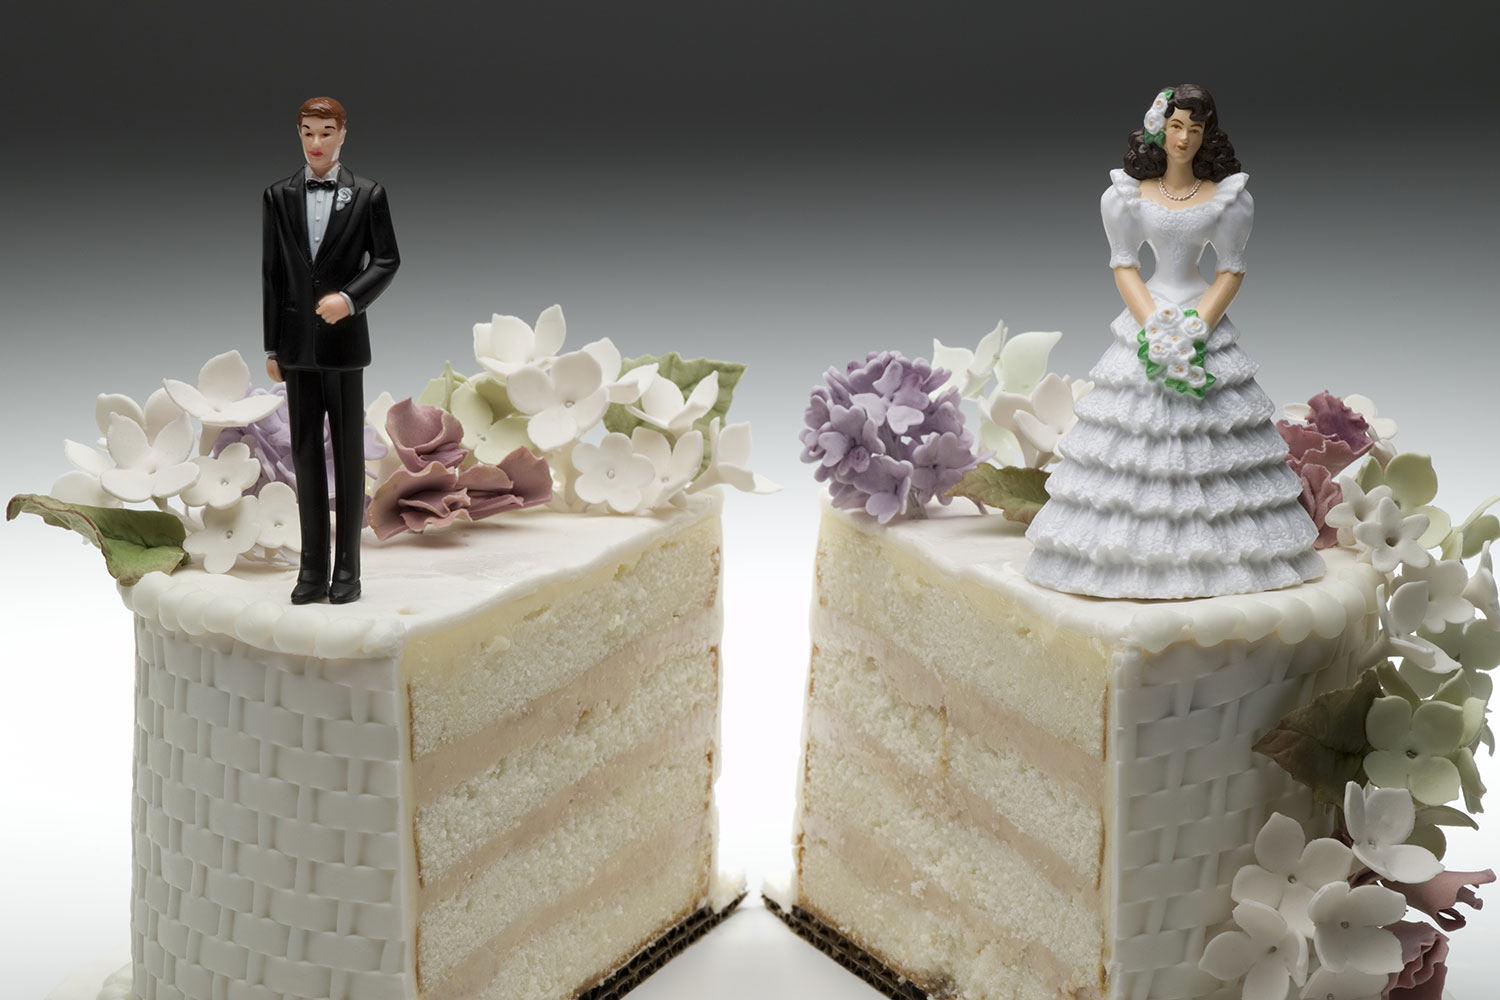 Highlights Of Changes To Illinois Divorce Law